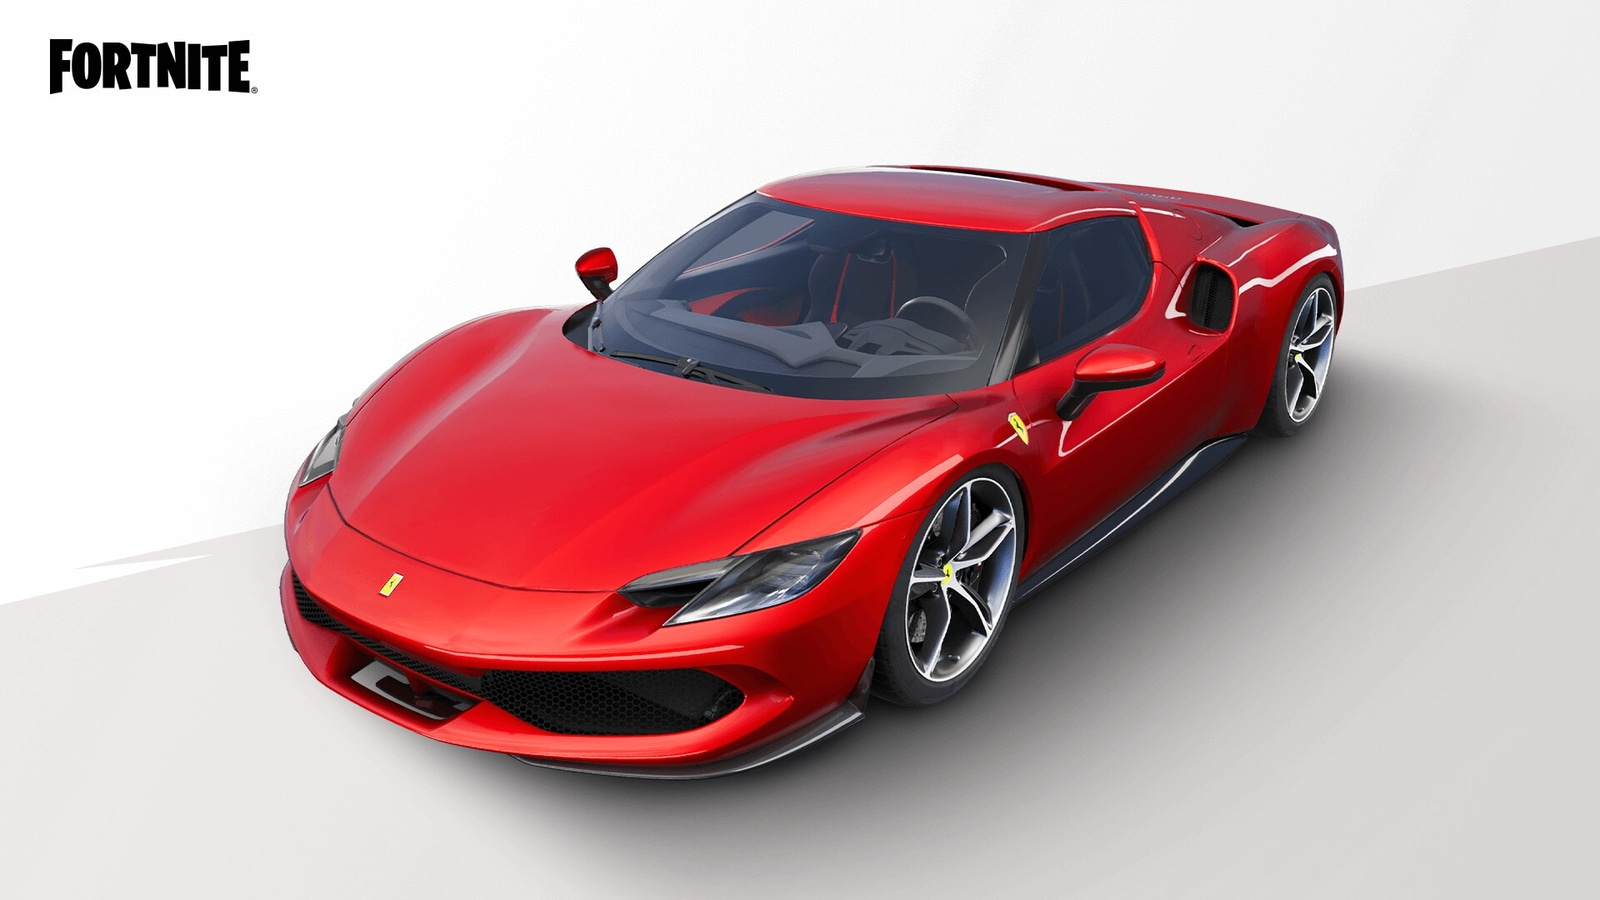 Good news!  Ride a Ferrari at Fortnite, made possible by Epic Games.